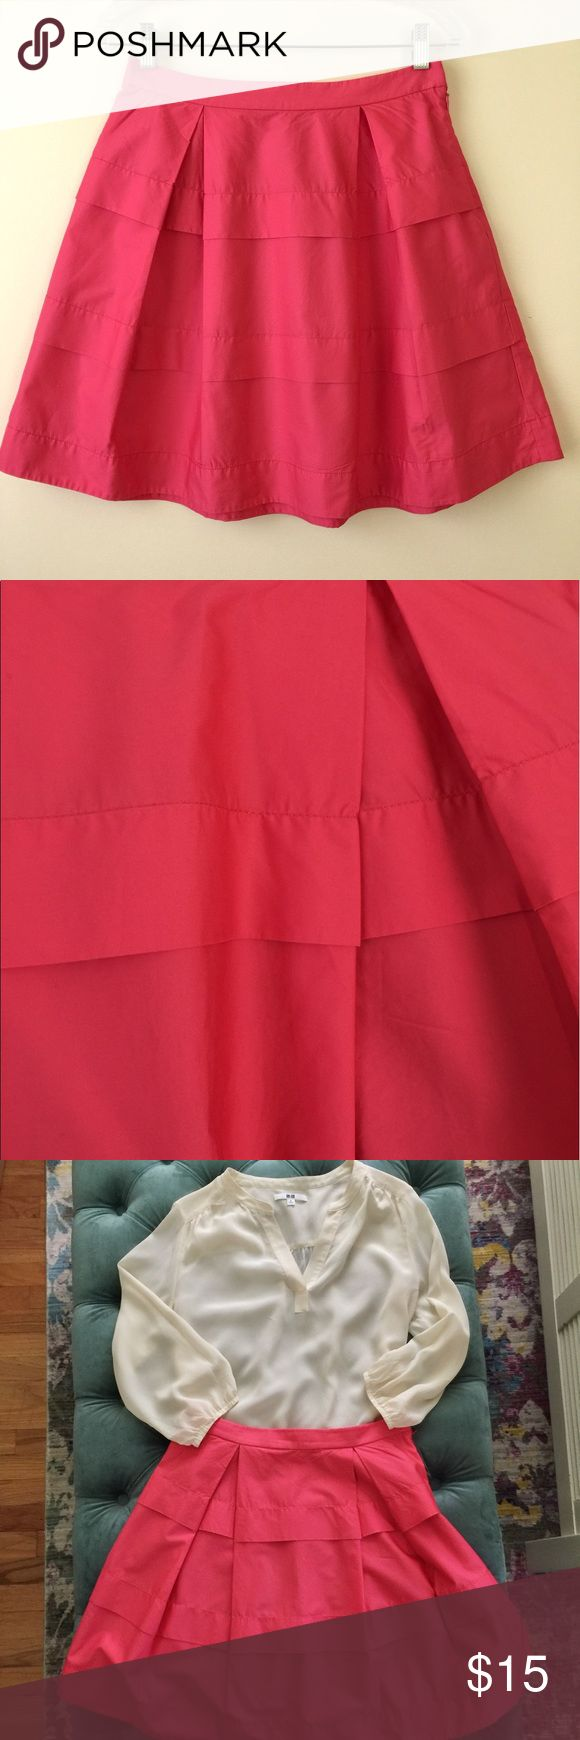 Deep Coral Sateen J Crew Skirt Gorgeous color, really pops! There is a subtle sheen to the fabric making it even more special. Adorable pleats front and back. Styled with silk Uniqlo blouse also from my closet! 100% cotton, dry clean recommended, but can be hand washed, line dried and ironed on low. Gently used. J. Crew Skirts A-Line or Full